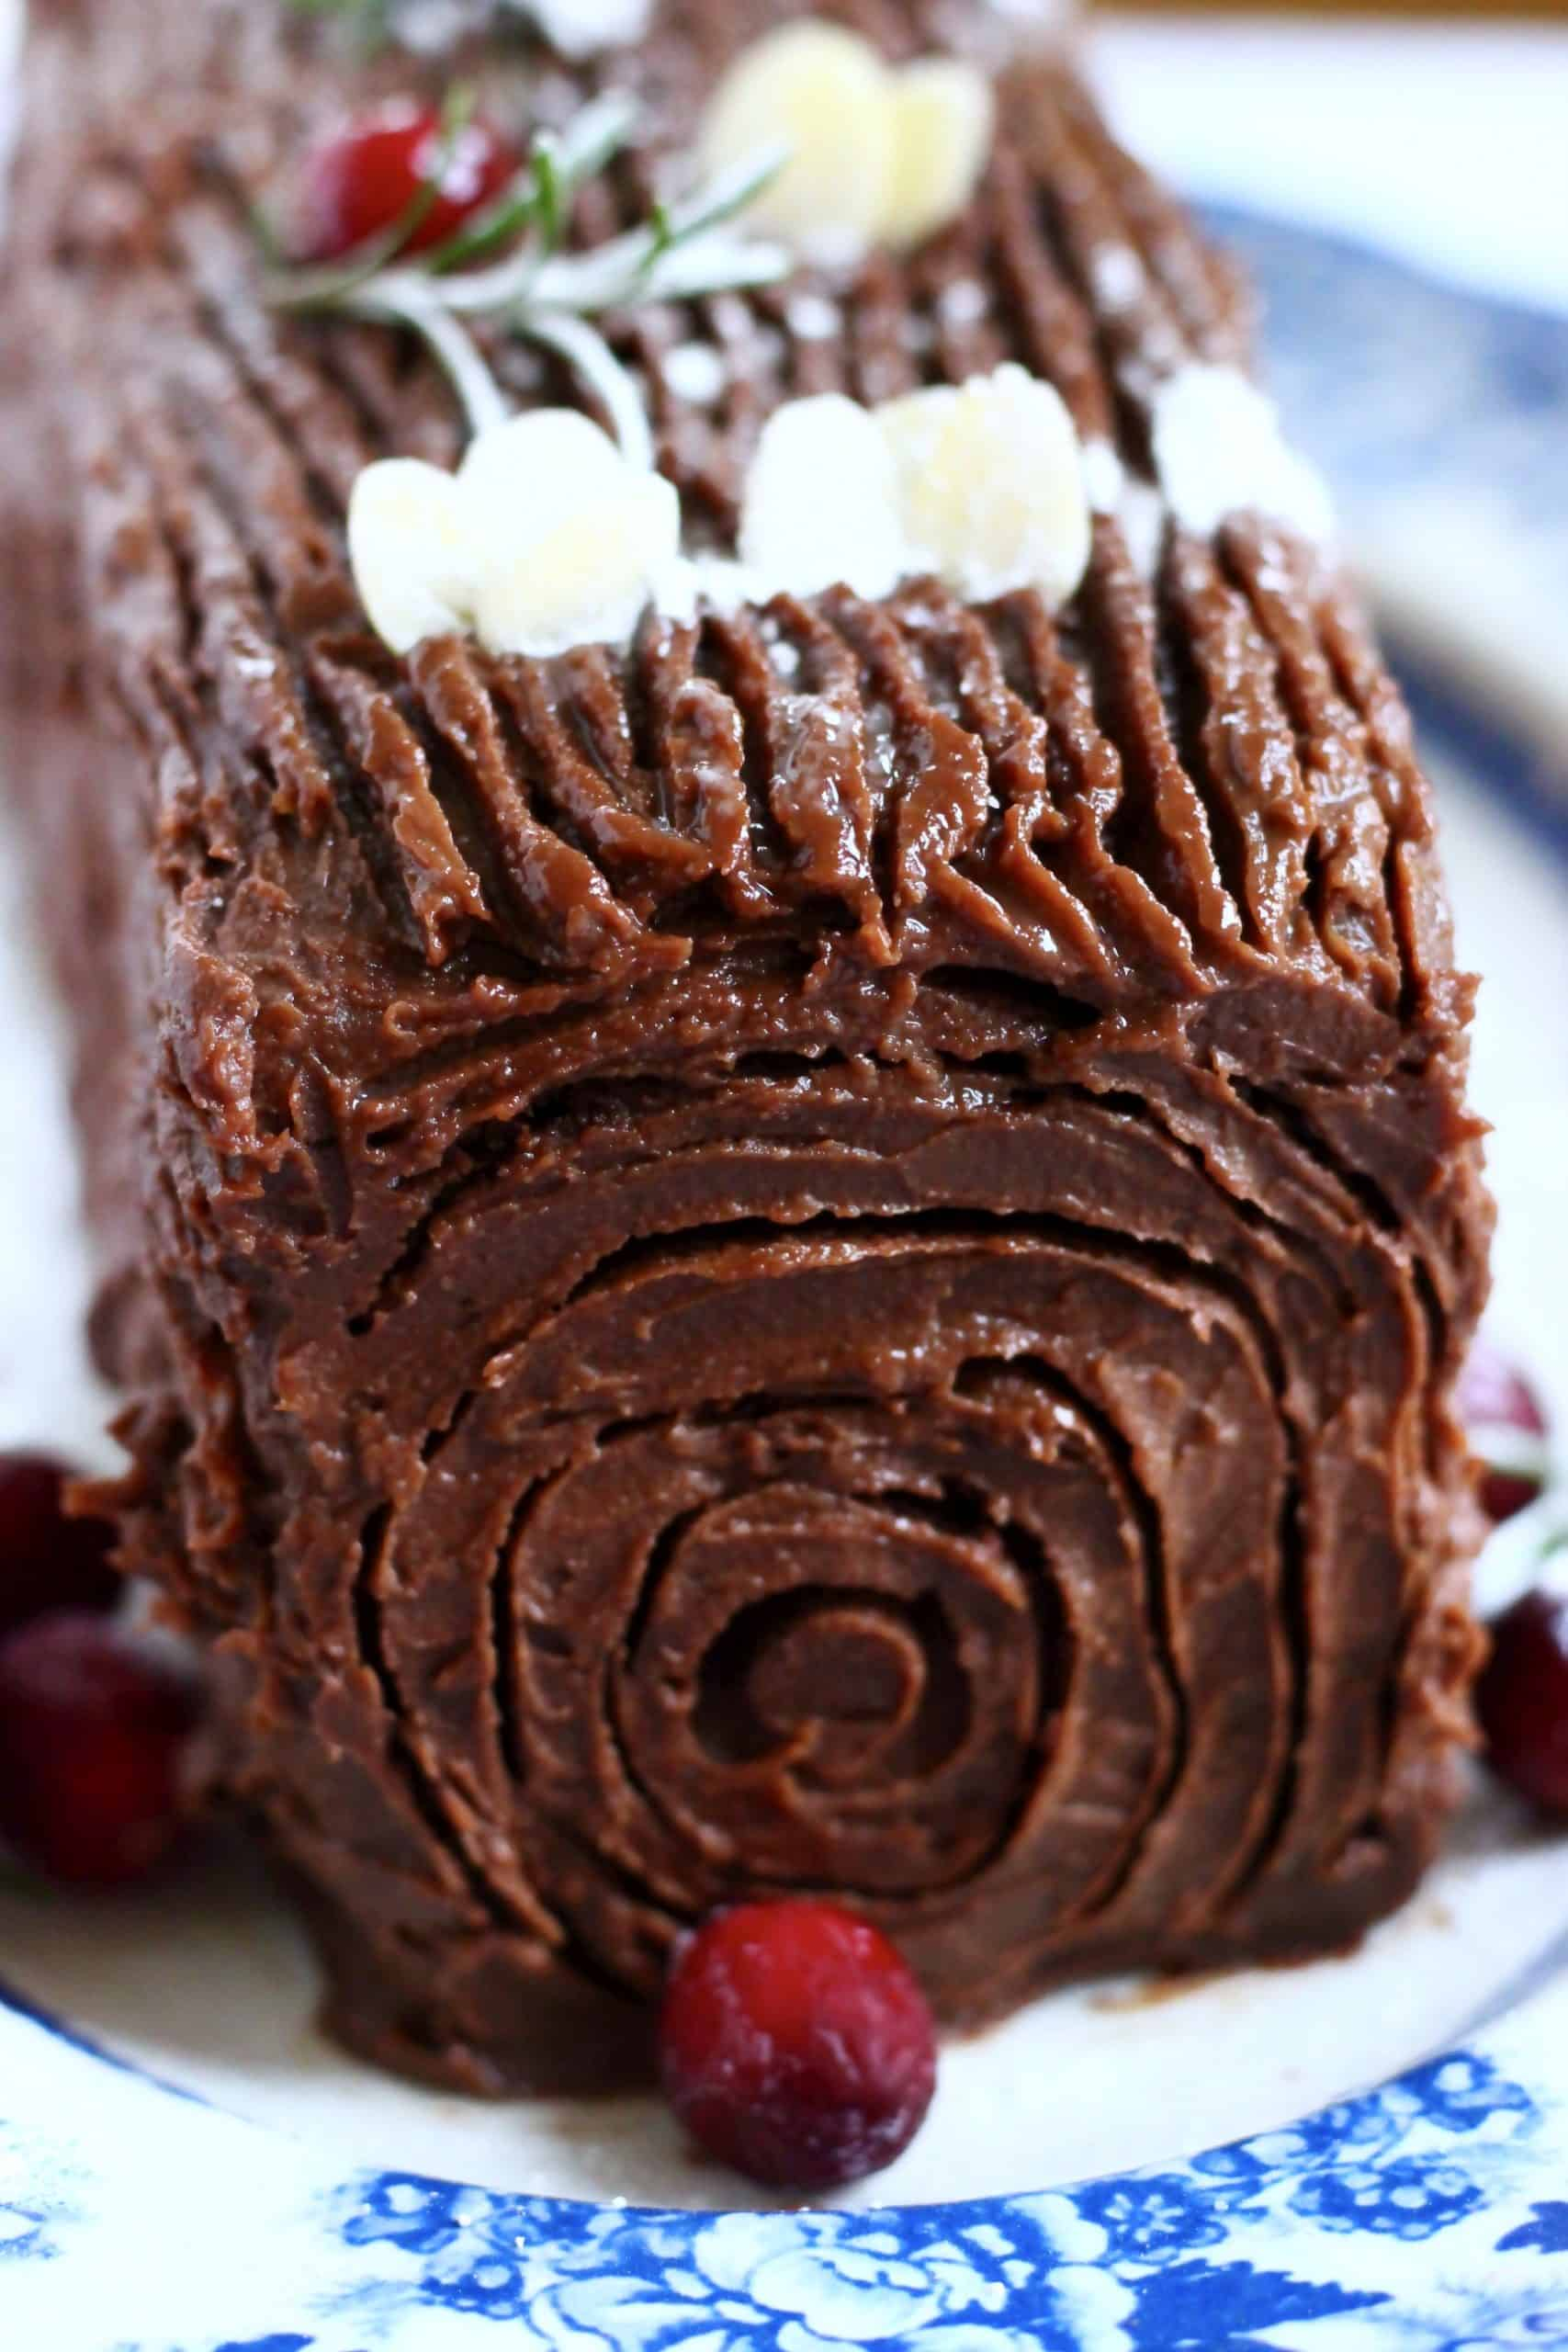 A gluten-free vegan yule log decorated with cranberries, rosemary and flaked almonds